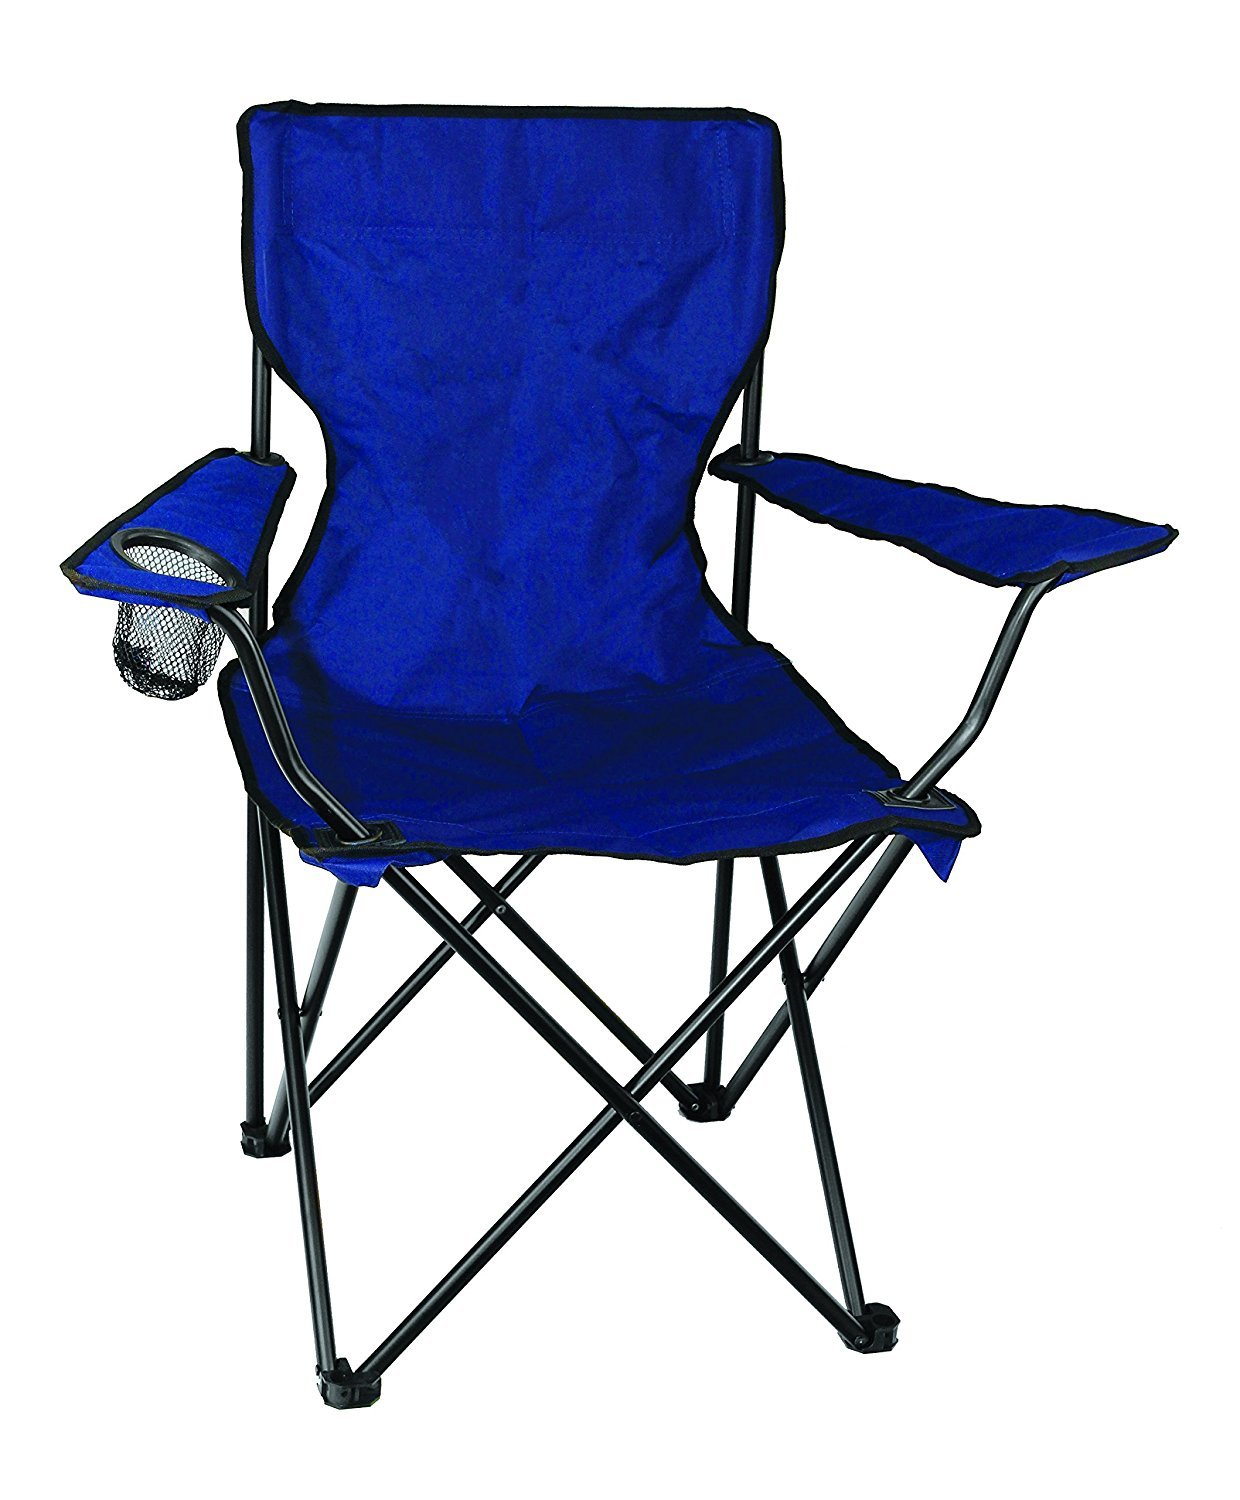 Texsport Bazaar Folding Camp Picnic Outdoor Chair with Drink Holder [並行輸入品] B077QG5LX3